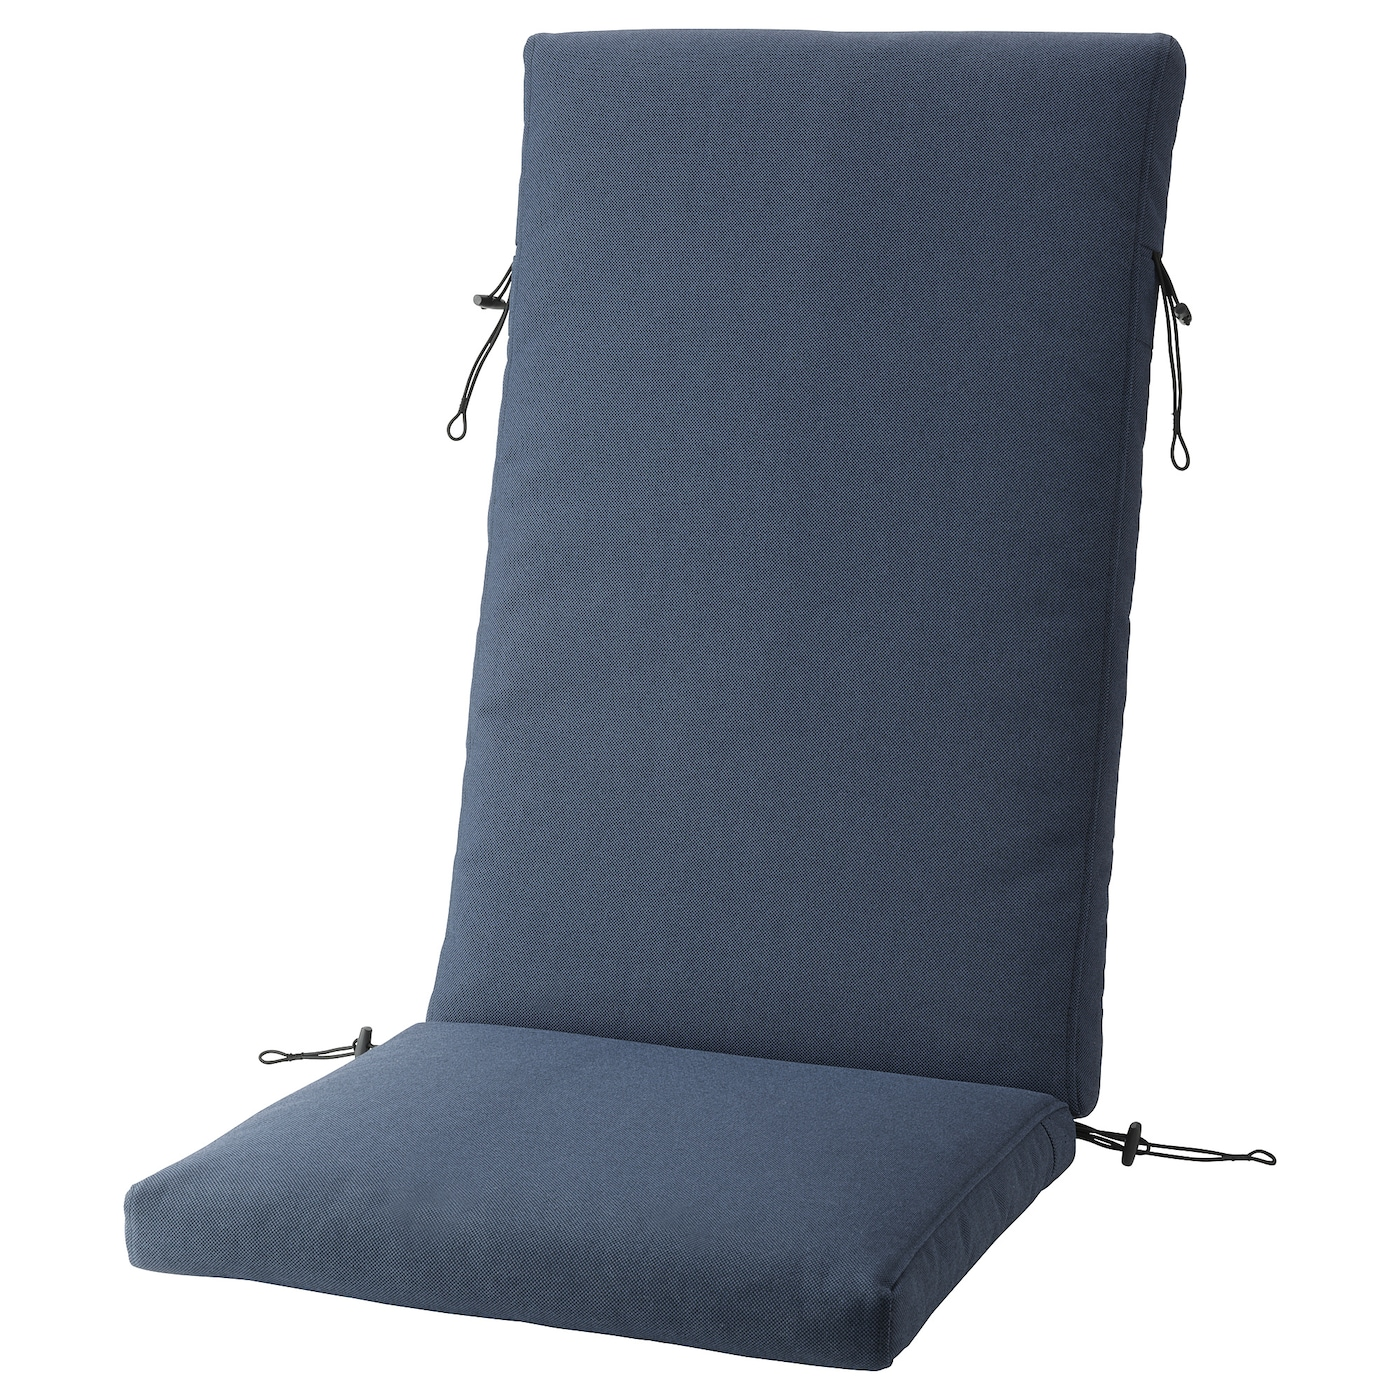 IKEA FRÖSÖN/DUVHOLMEN seat/back cushion, outdoor The zipper makes the cover easy to remove.